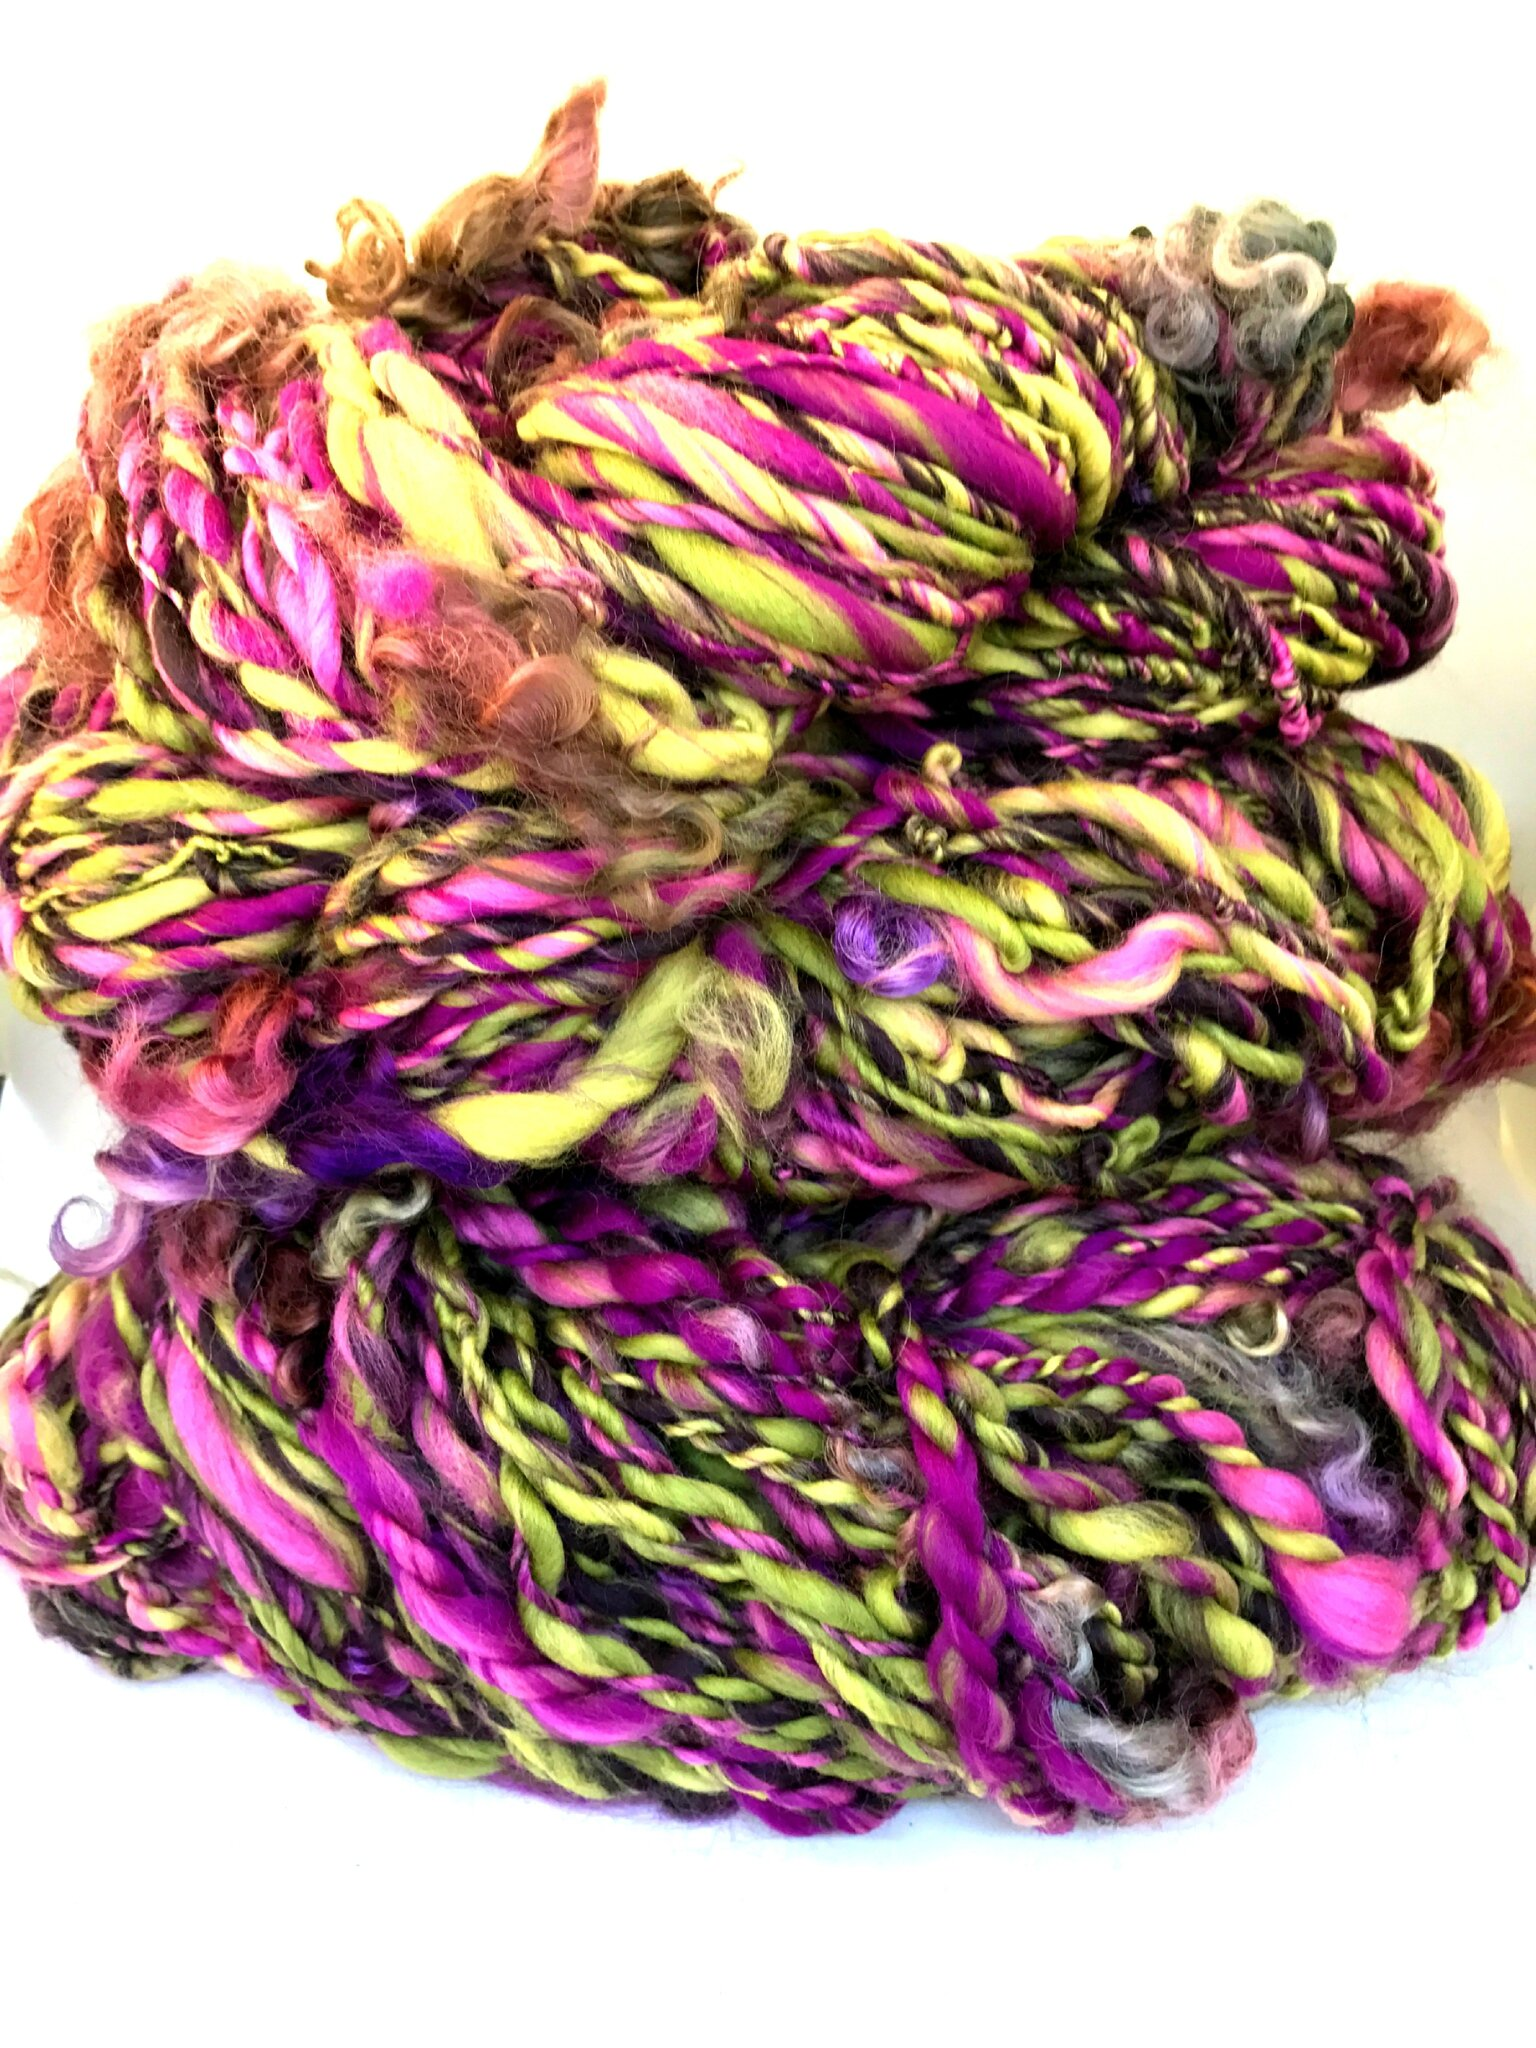 purplegreenyarn3